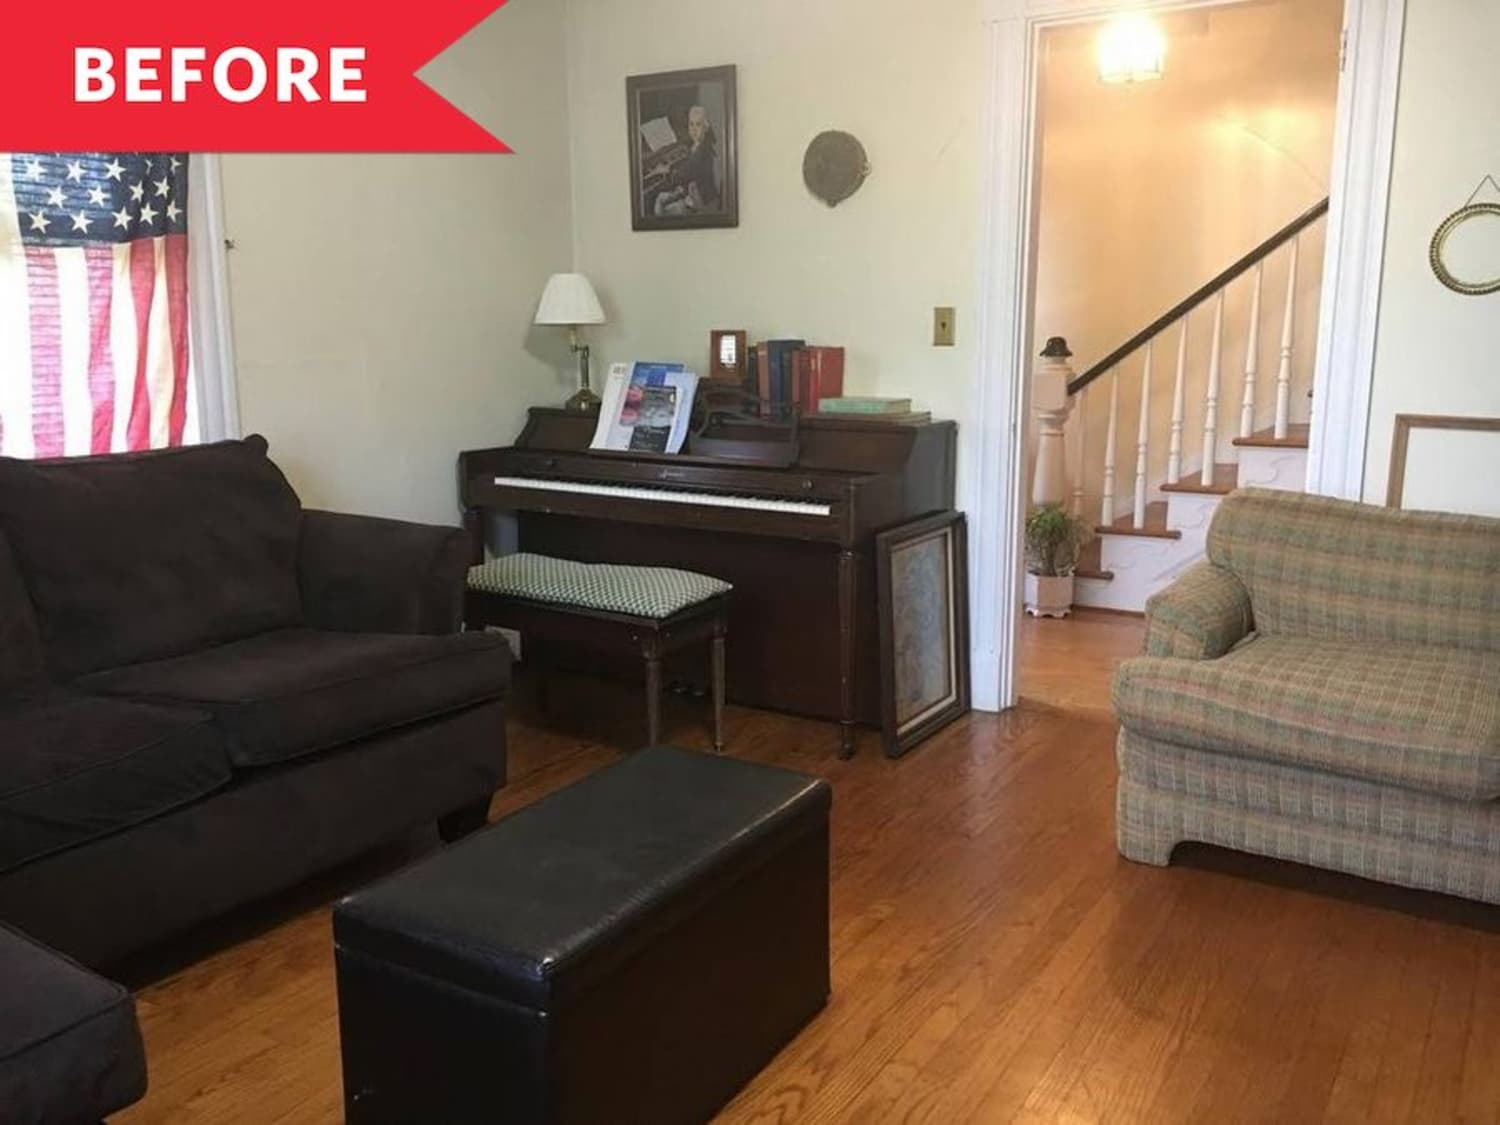 Before and After: This Living Room Looks Bigger and Brighter—No Reno Required